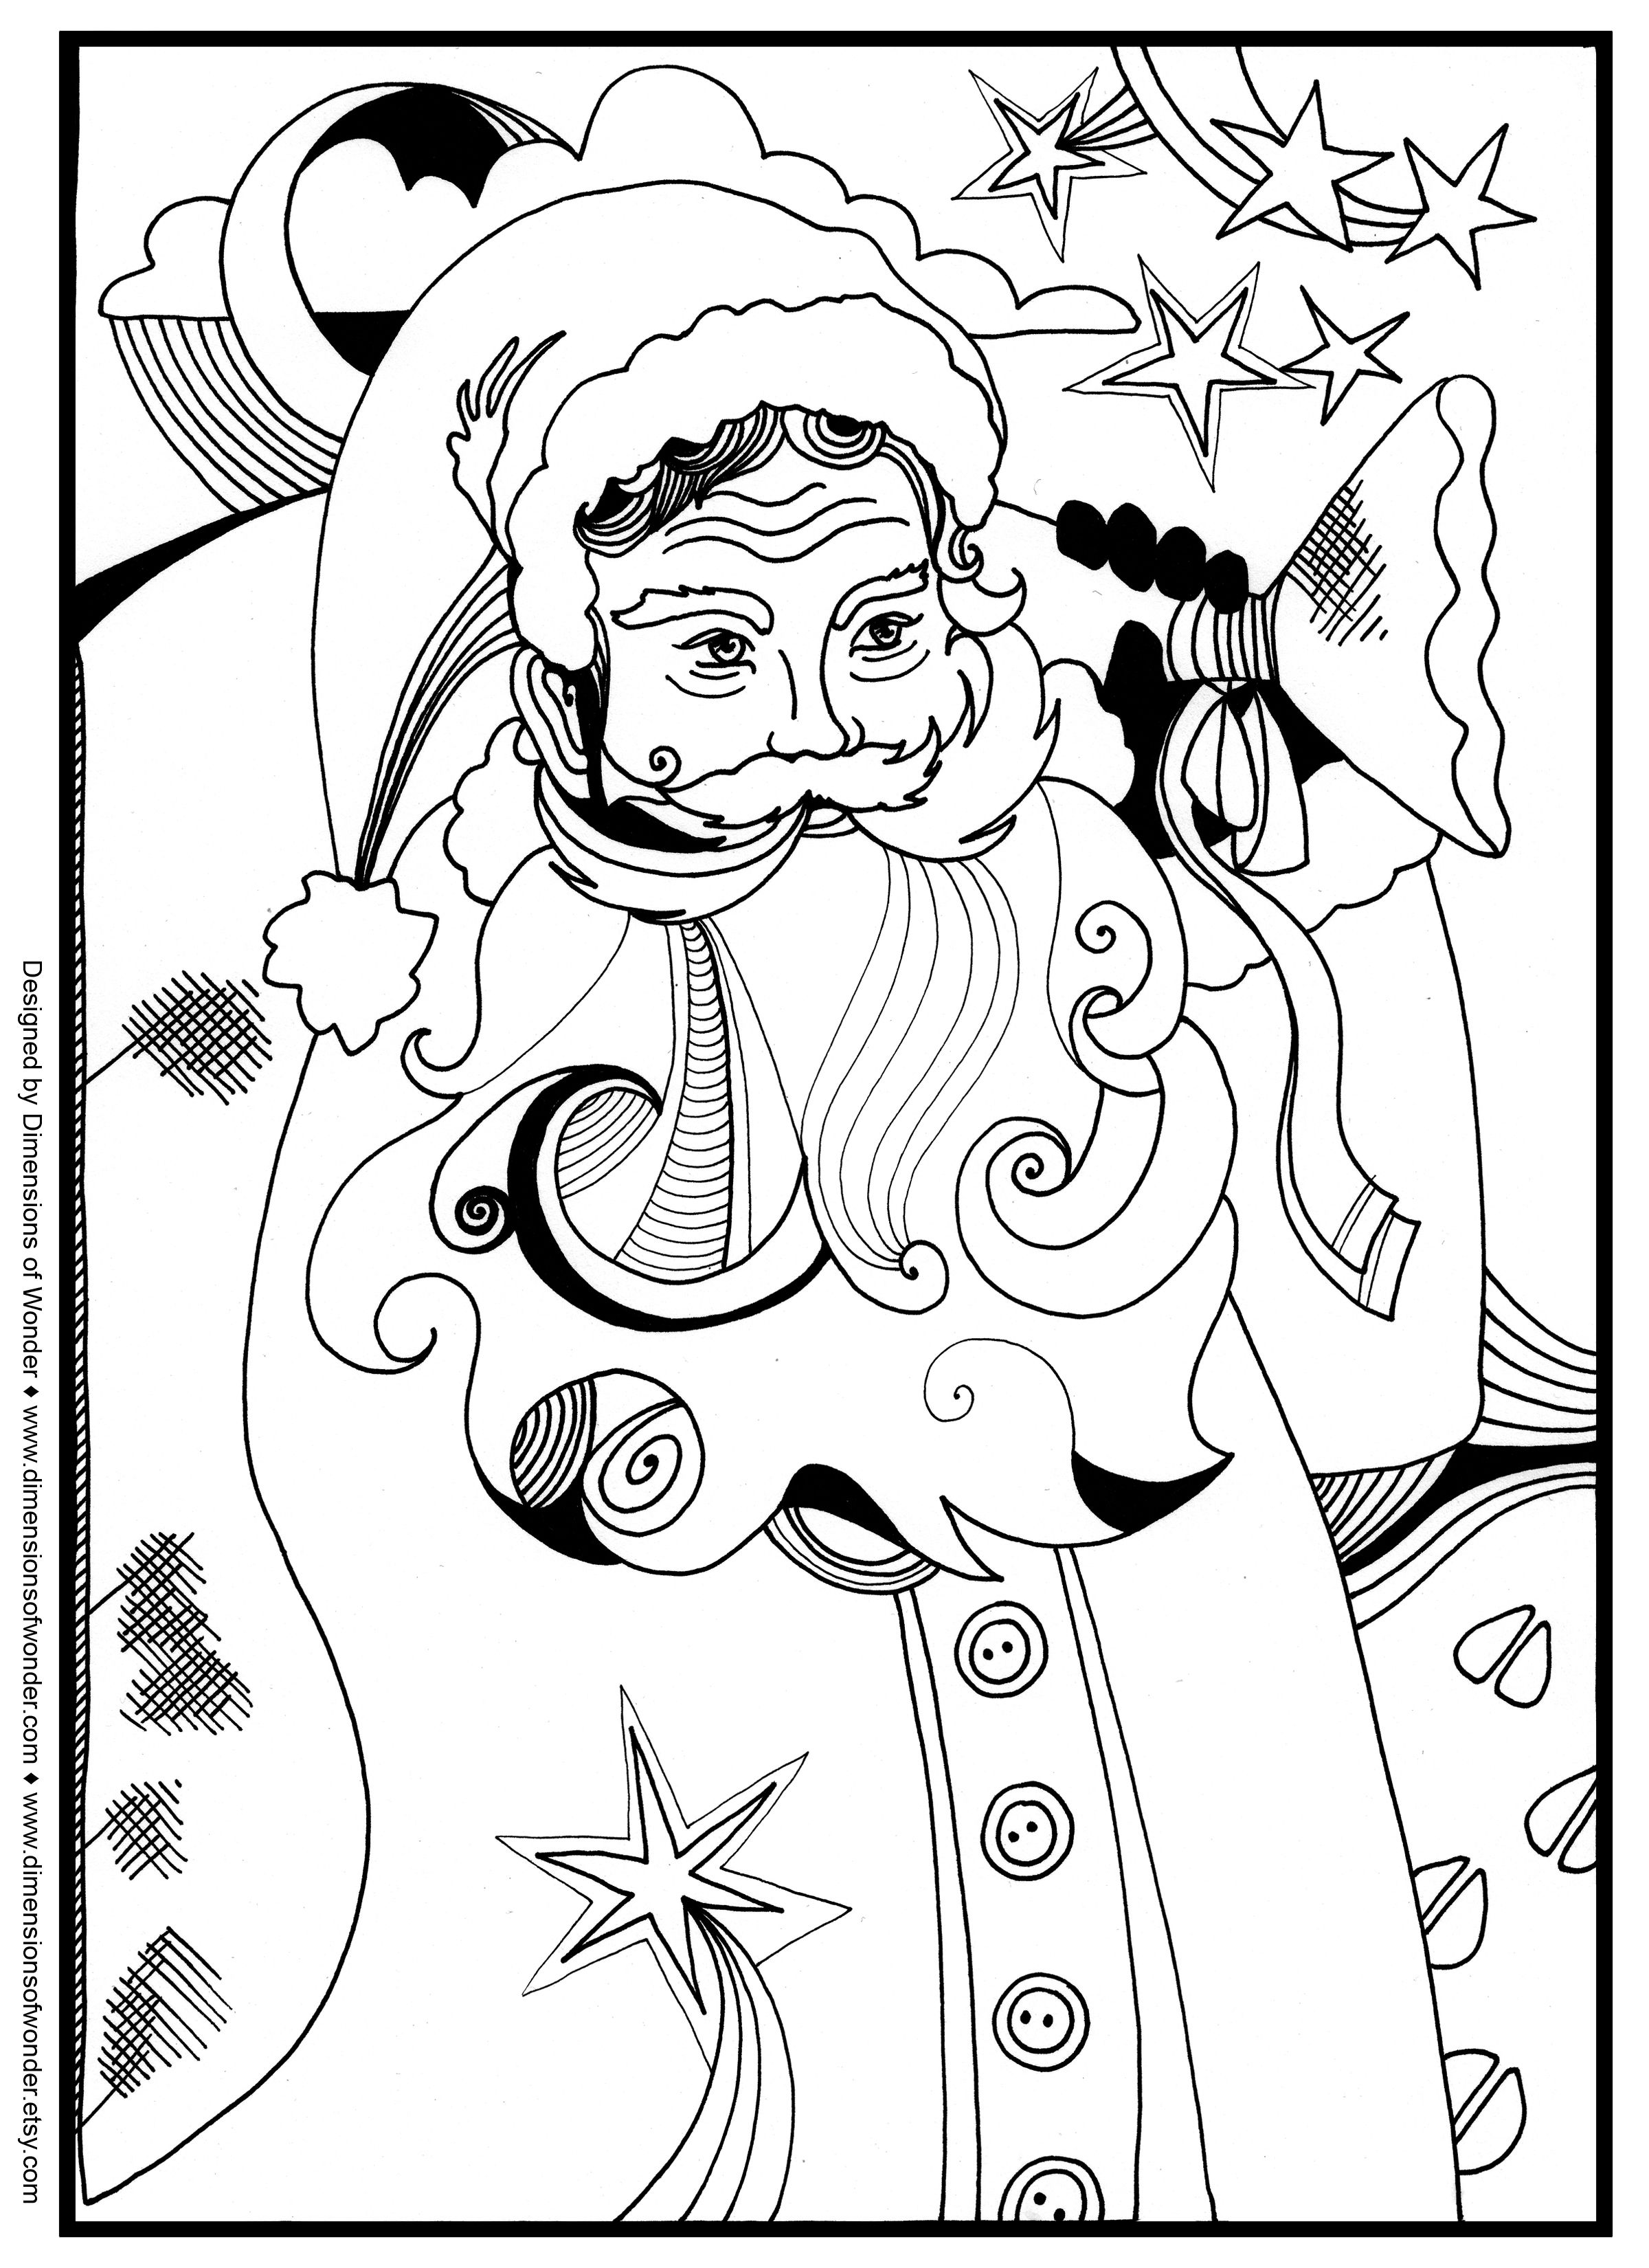 Santa Christmas Around The World Coloring Pages KidsfreecoloringNet